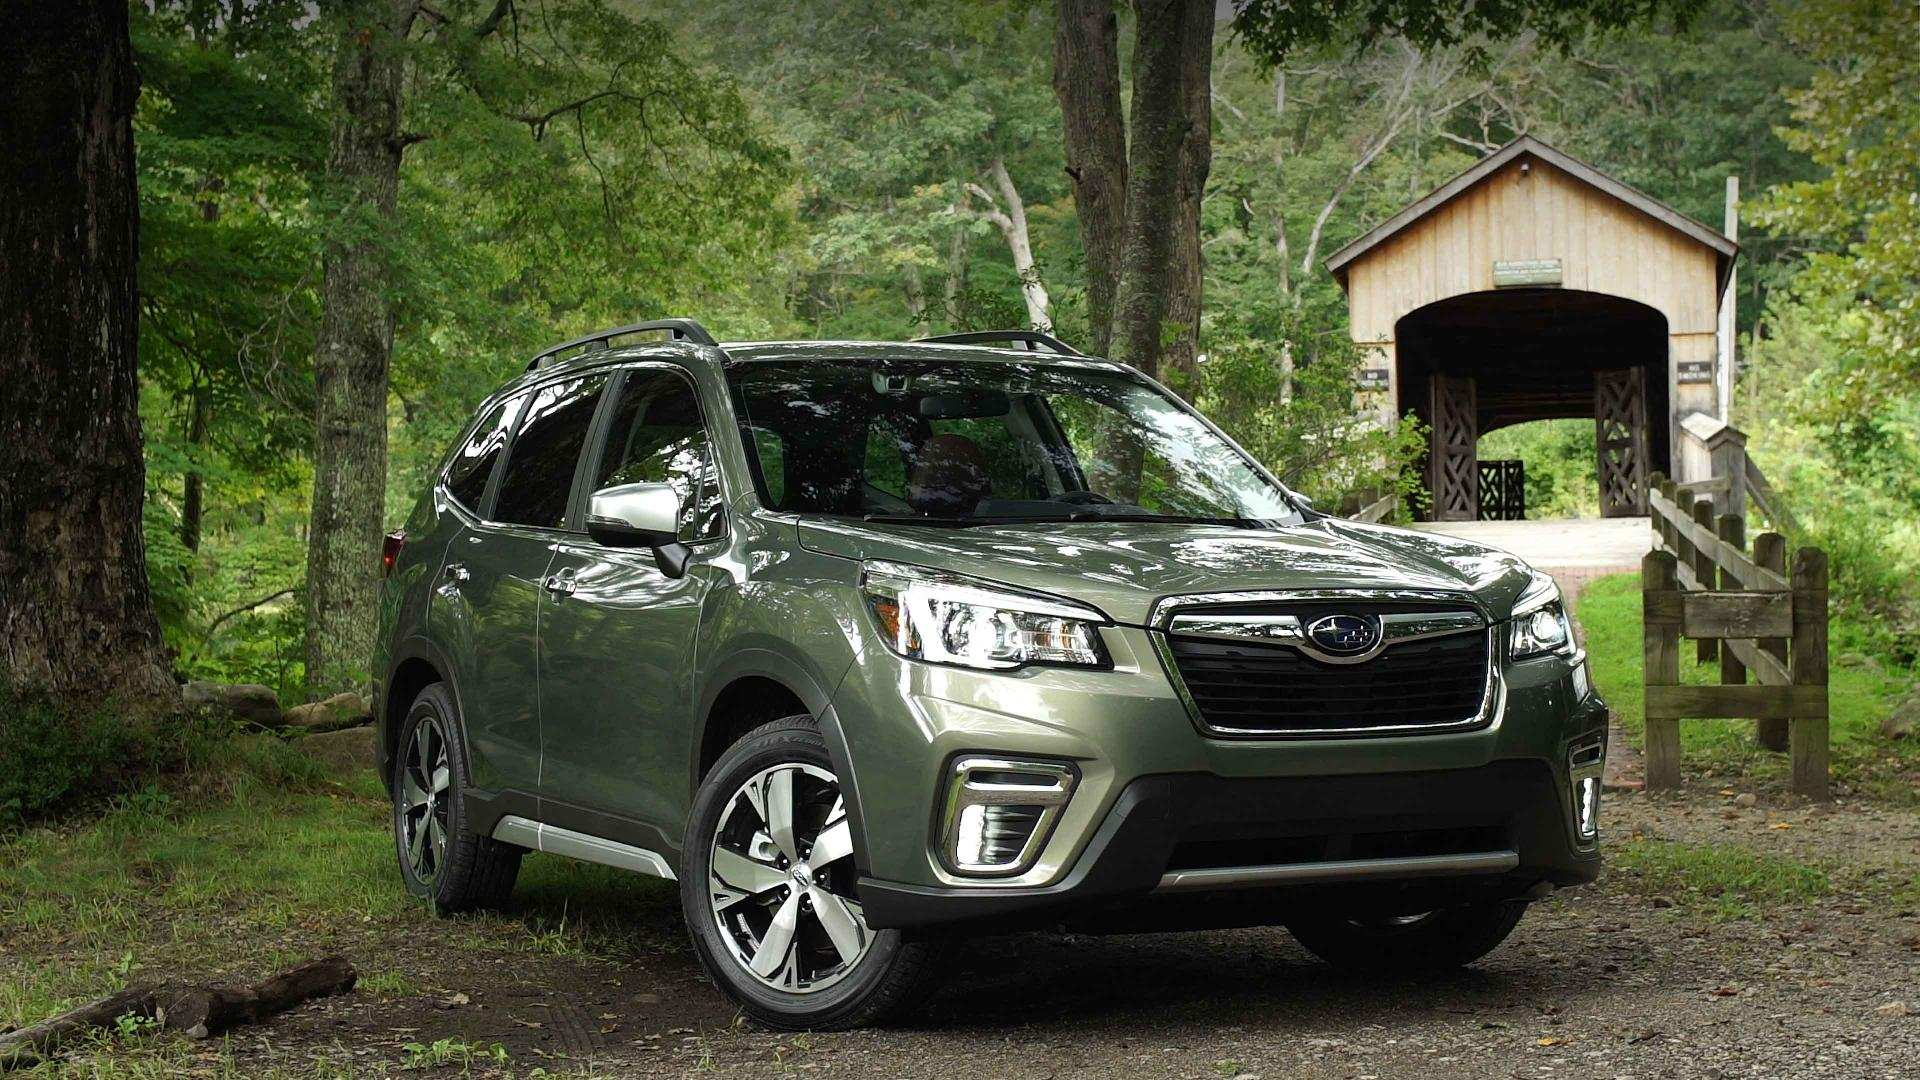 68 Concept of 2019 Subaru Forester Design Exterior by 2019 Subaru Forester Design